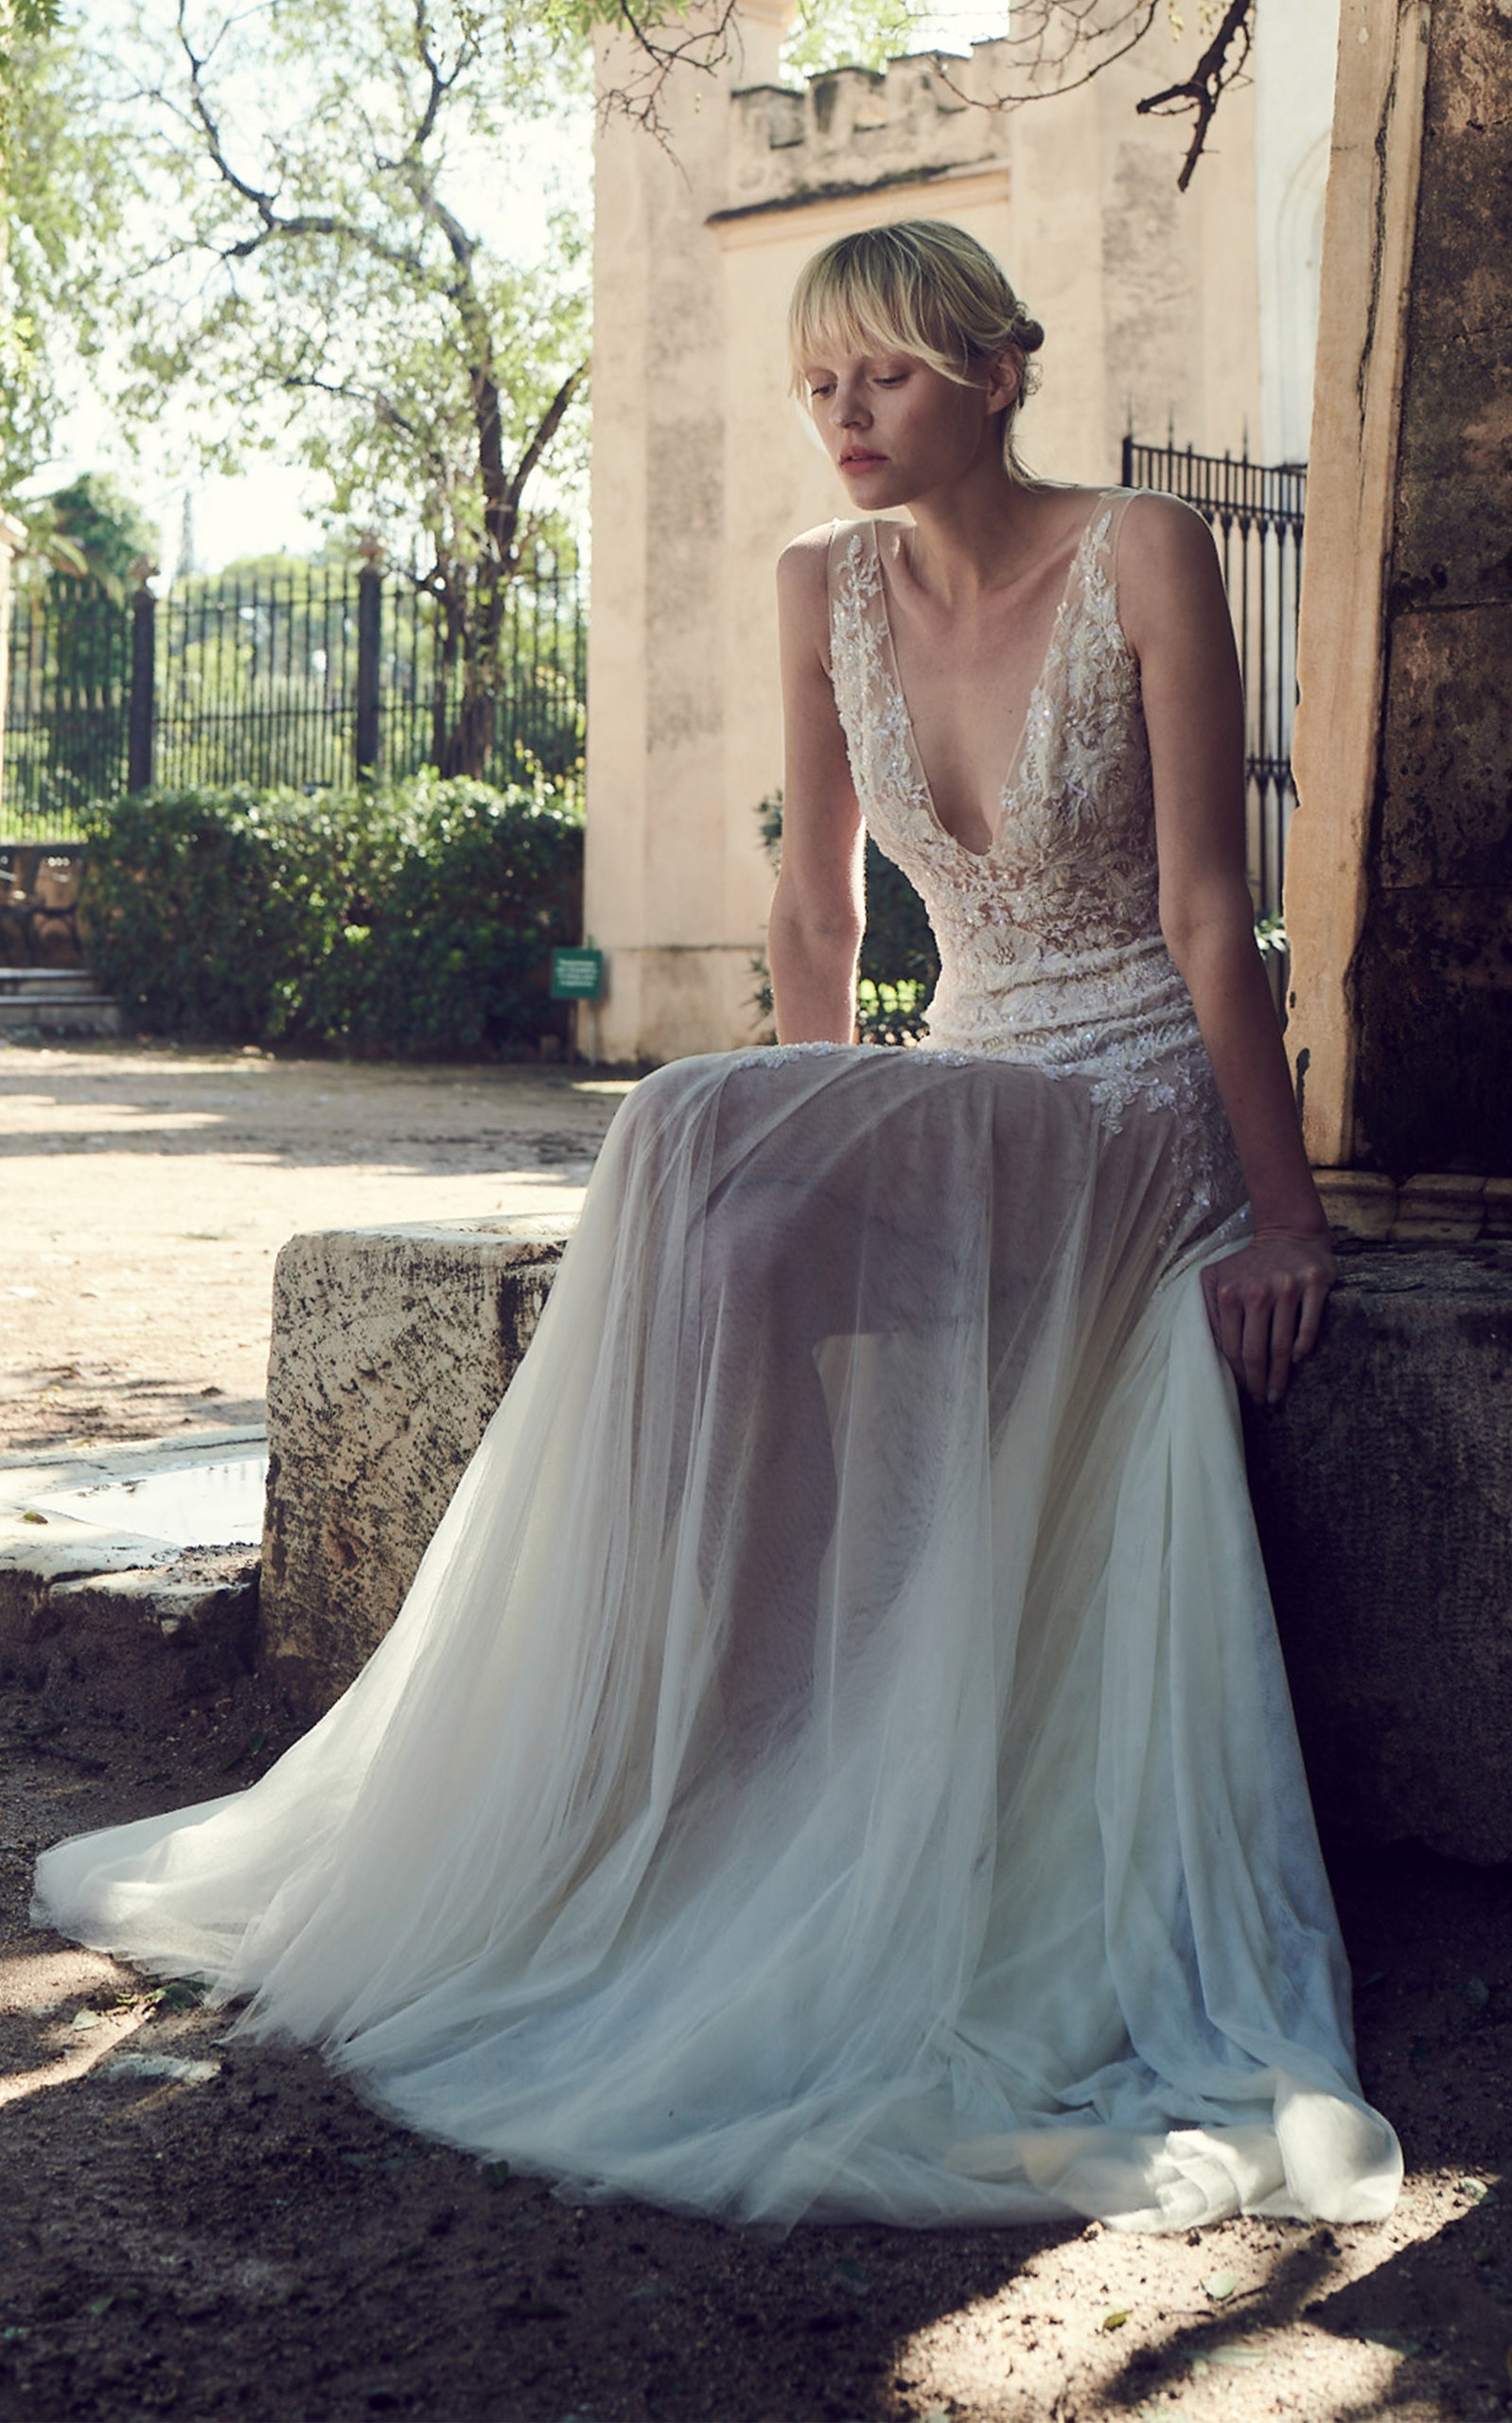 COSTARELLOS BRIDAL Plunging Neck Beaded Chantilly Lace Dress in White